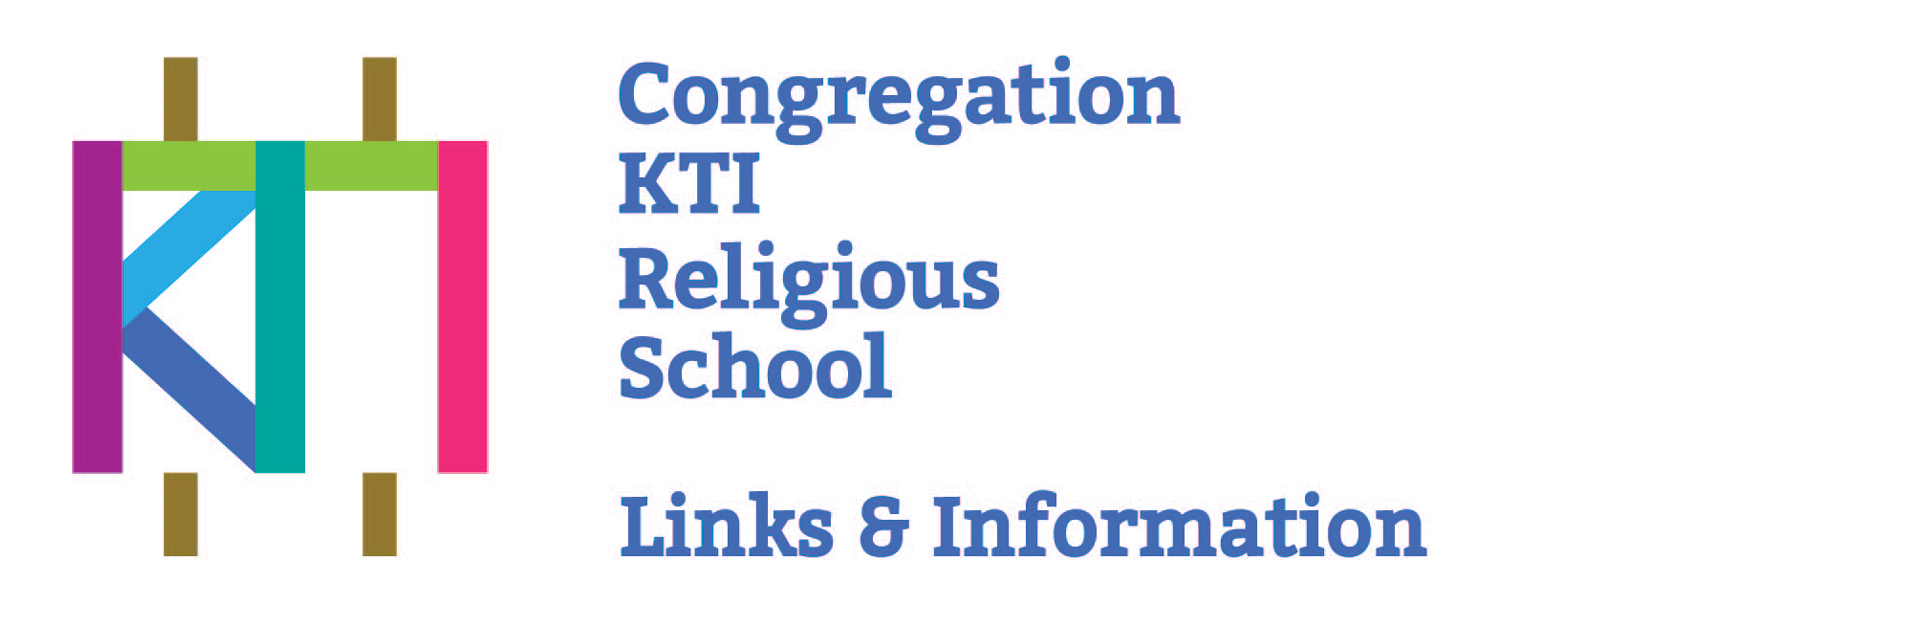 "<a href=""https://www.congkti.org/religious-school-info--links.html""